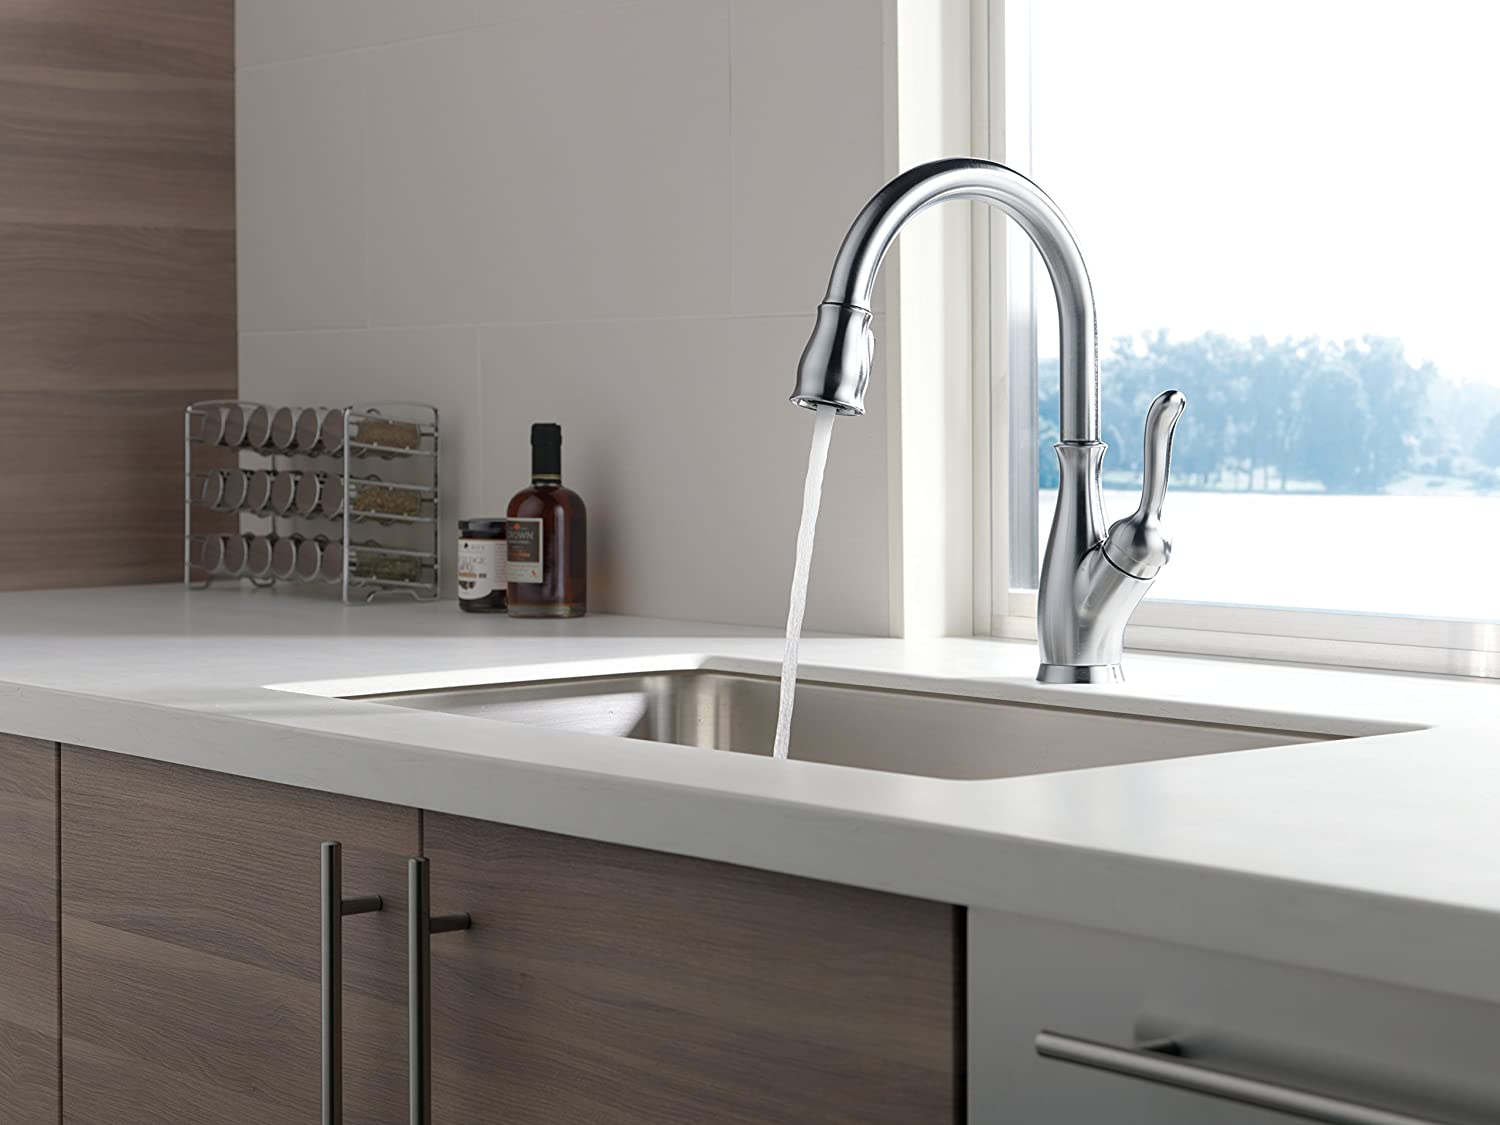 Leland Delta Kitchen Faucet Delta Faucet 9178 Ar Dst Leland Single Handle Pull Down Kitchen